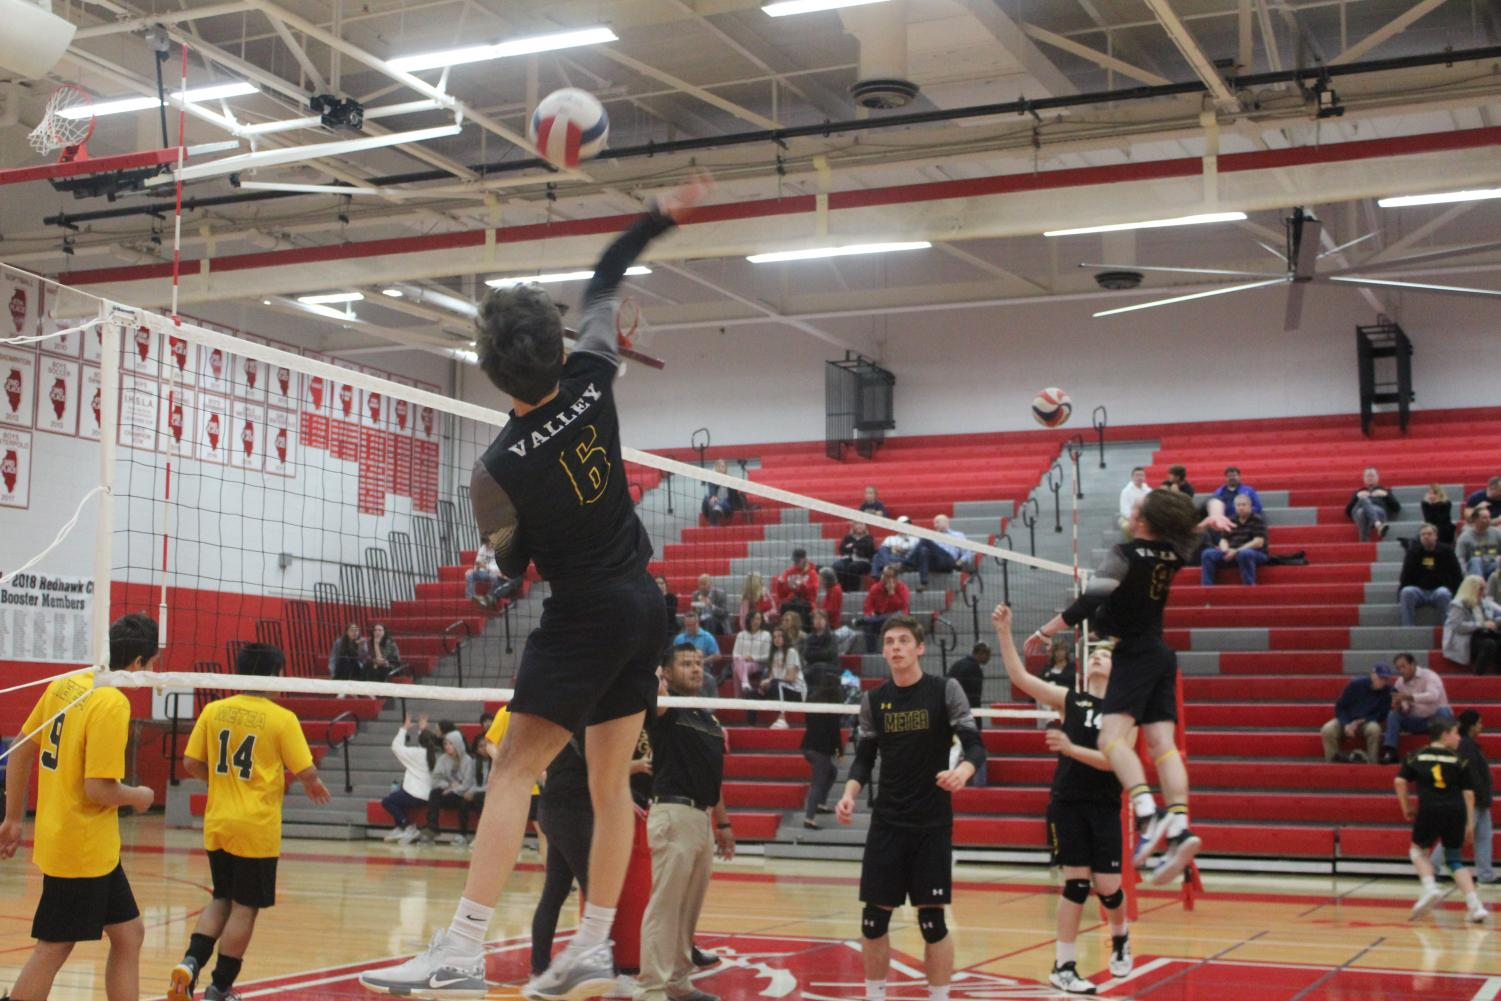 Junior+and+outside+hitter+Tj+Steffgen+warming+up+before+competing+against+Naperville+Central.